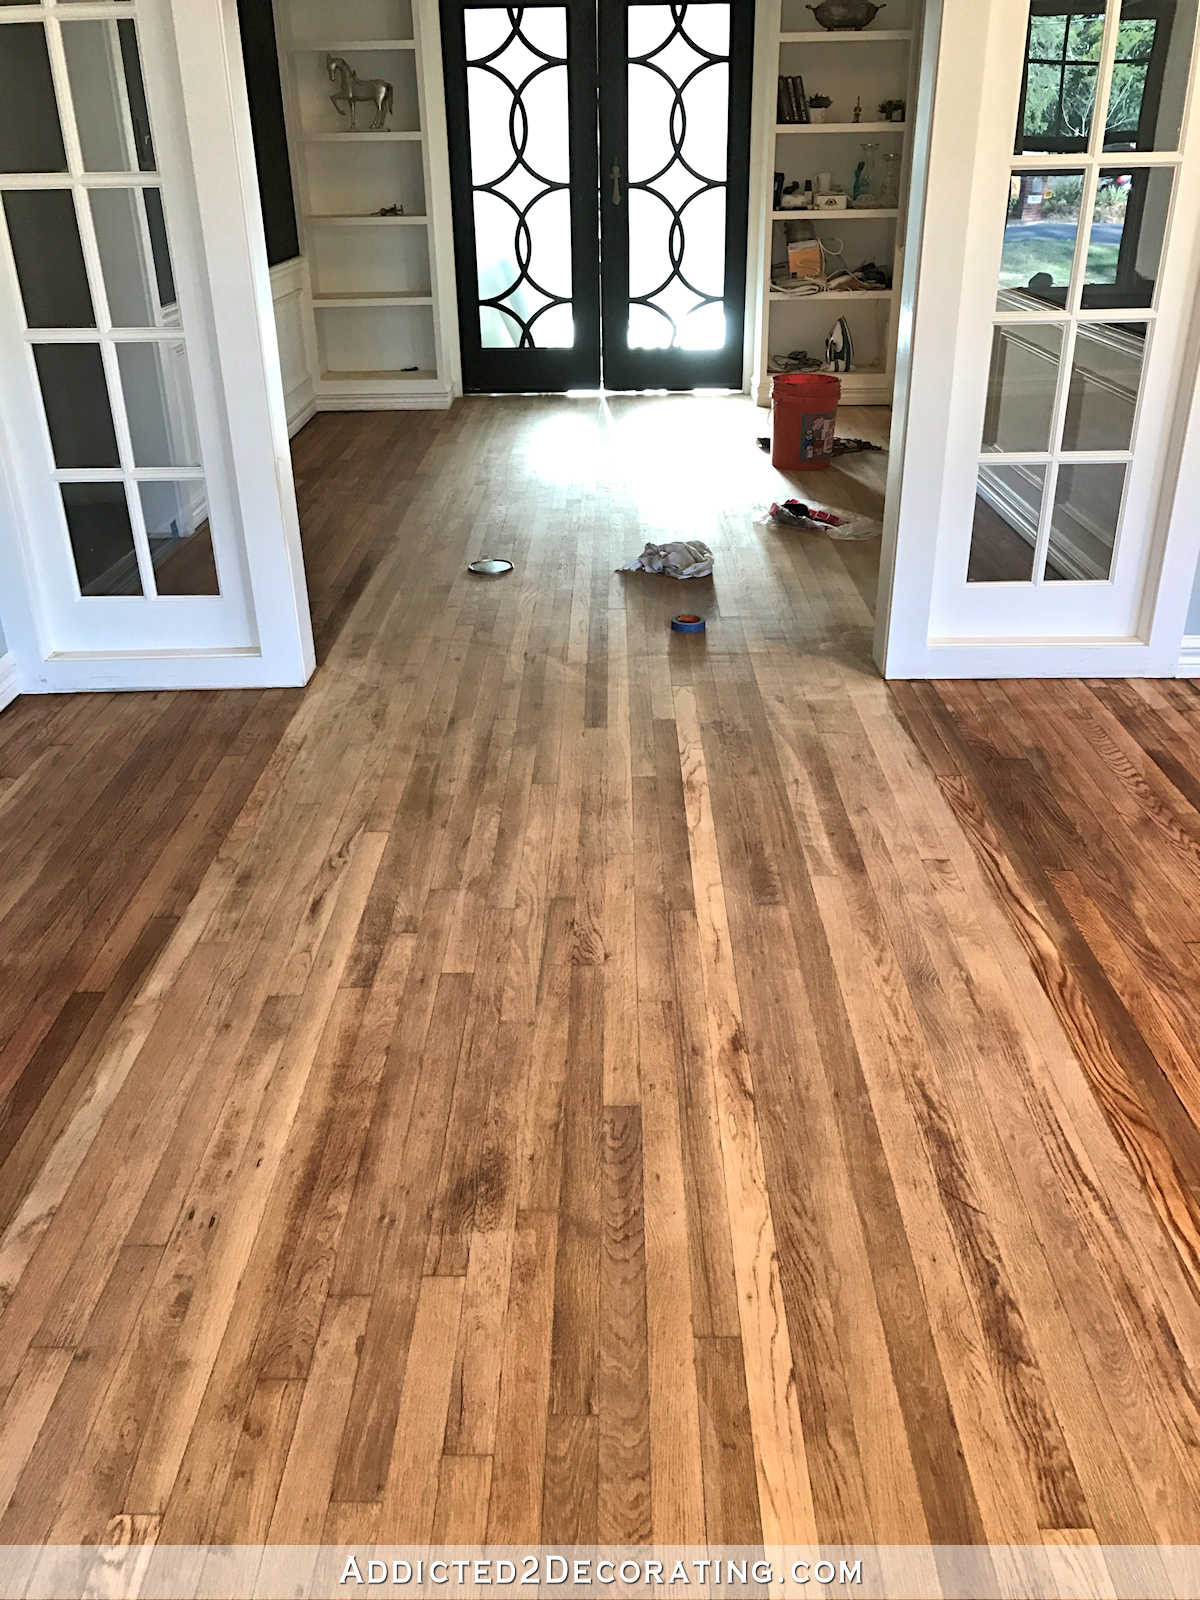 cost to refinish hardwood floors denver of how much to refinish wood floors adventures in staining my red oak throughout how much to refinish wood floors adventures in staining my red oak hardwood floors products